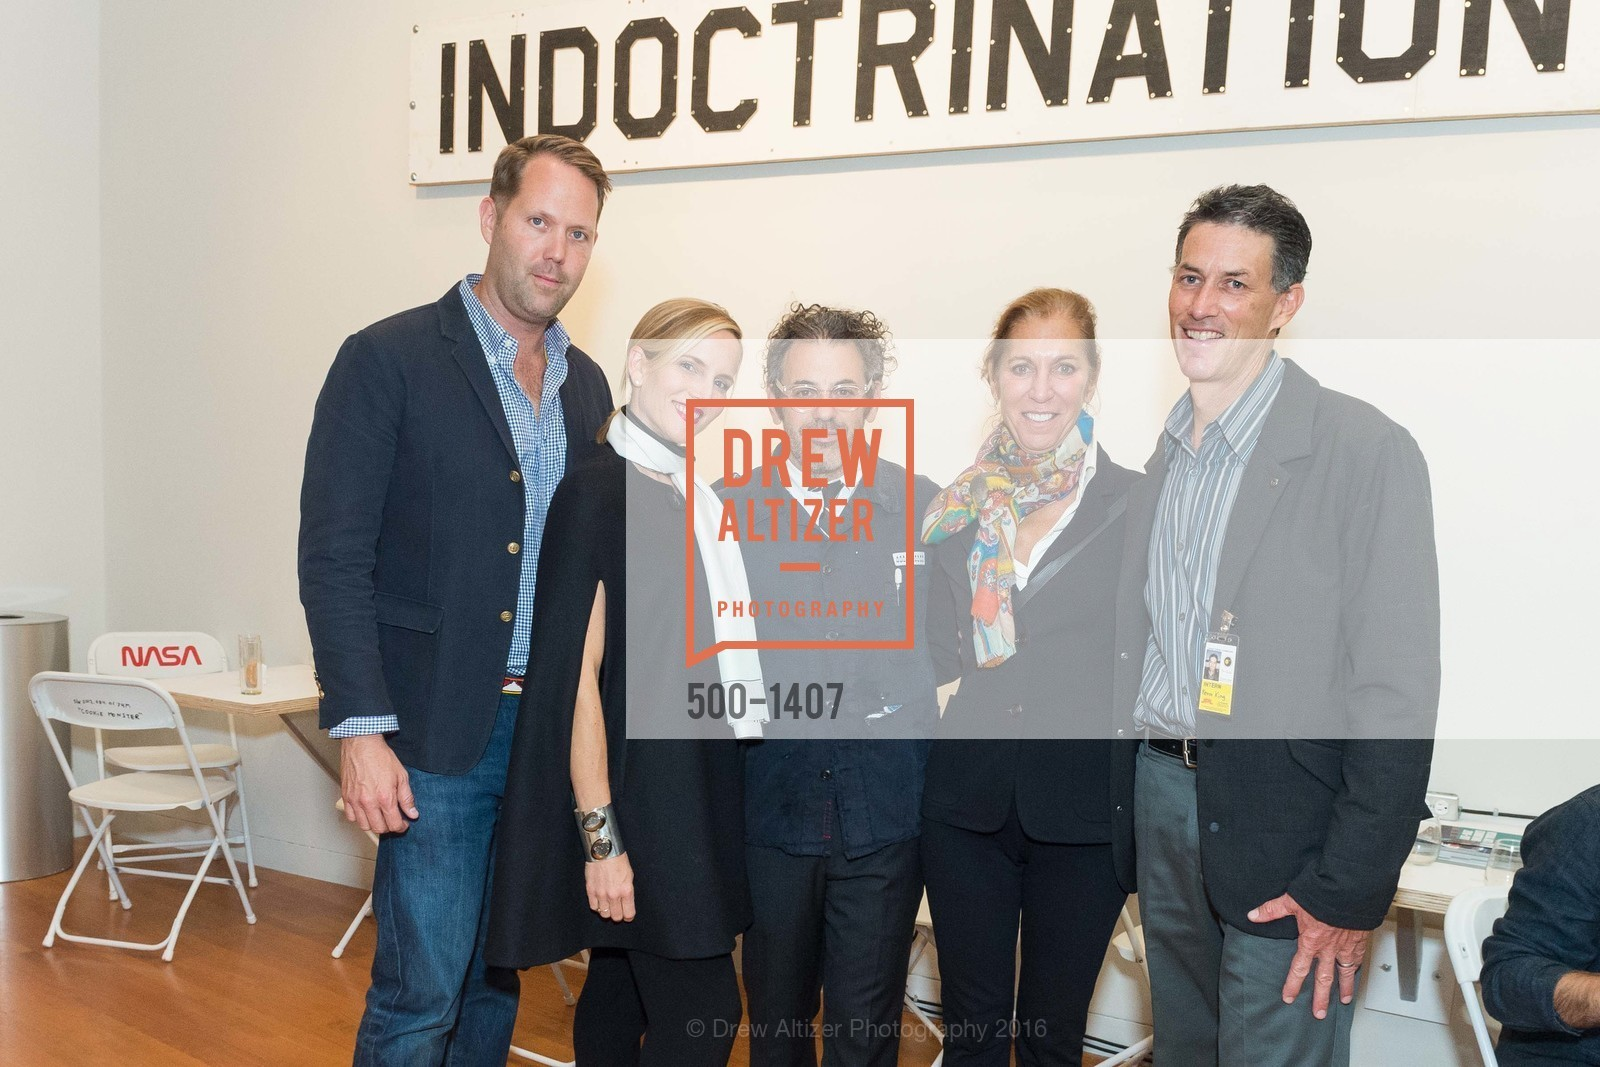 Alan Dye, Elizabeth Dye, Tom Sachs, Meridee Moore, Kevin King, Photo #500-1407